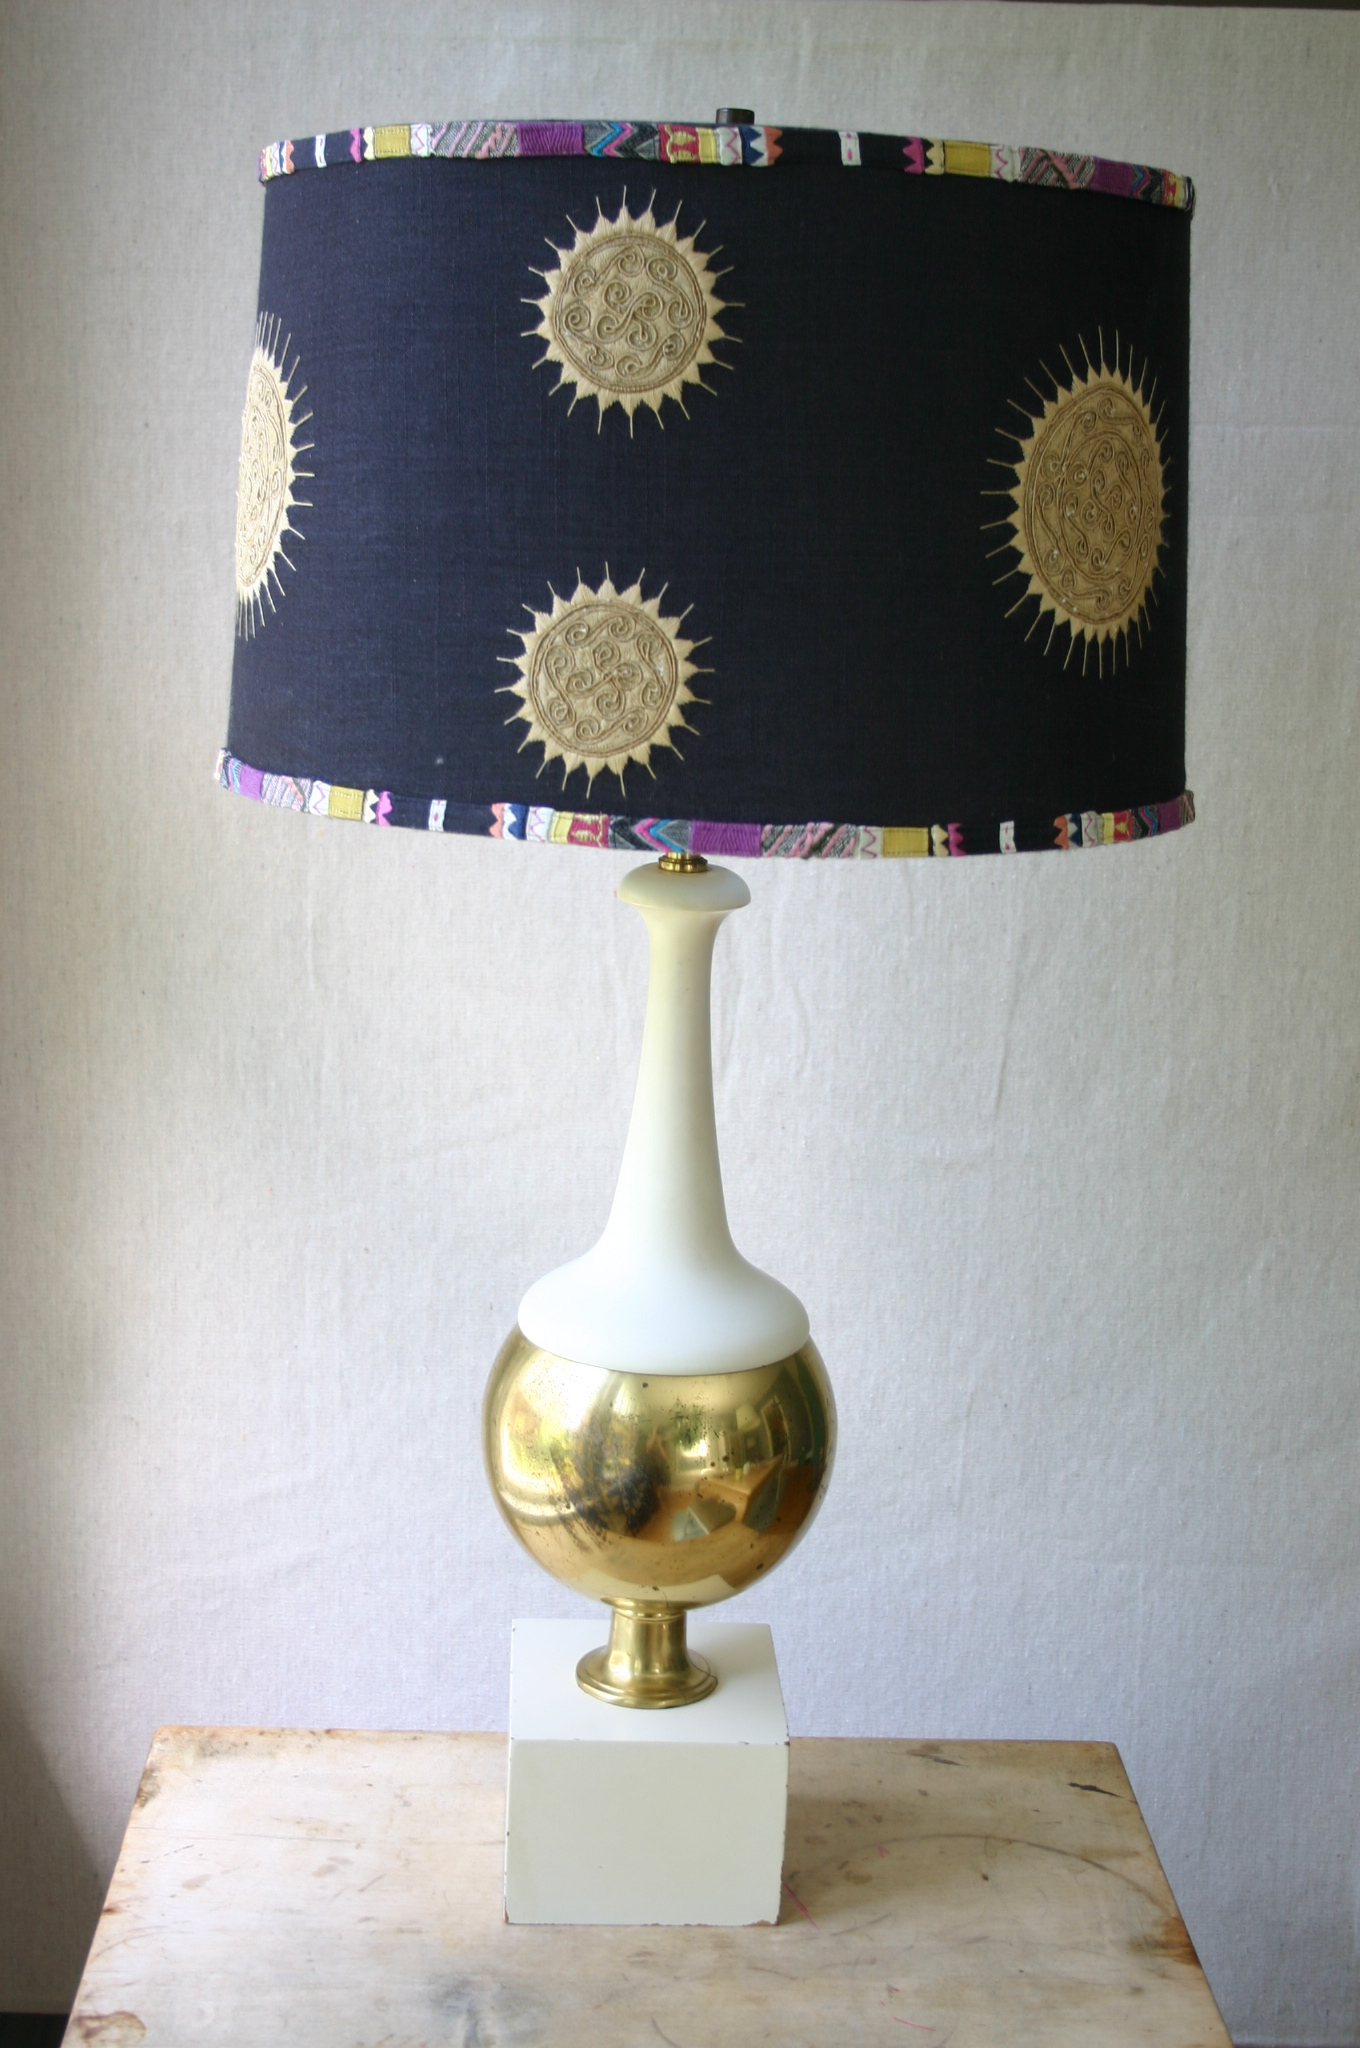 I picked up this lamp base for $7.00 at a local thrift store. Because I spent so little on it, I didn't mind splurging on the shade. Luckily, I found this great looking shade at Anthropolgie - on sale for $70.00. I love the combination of clean smooth lines with ethnic prints.